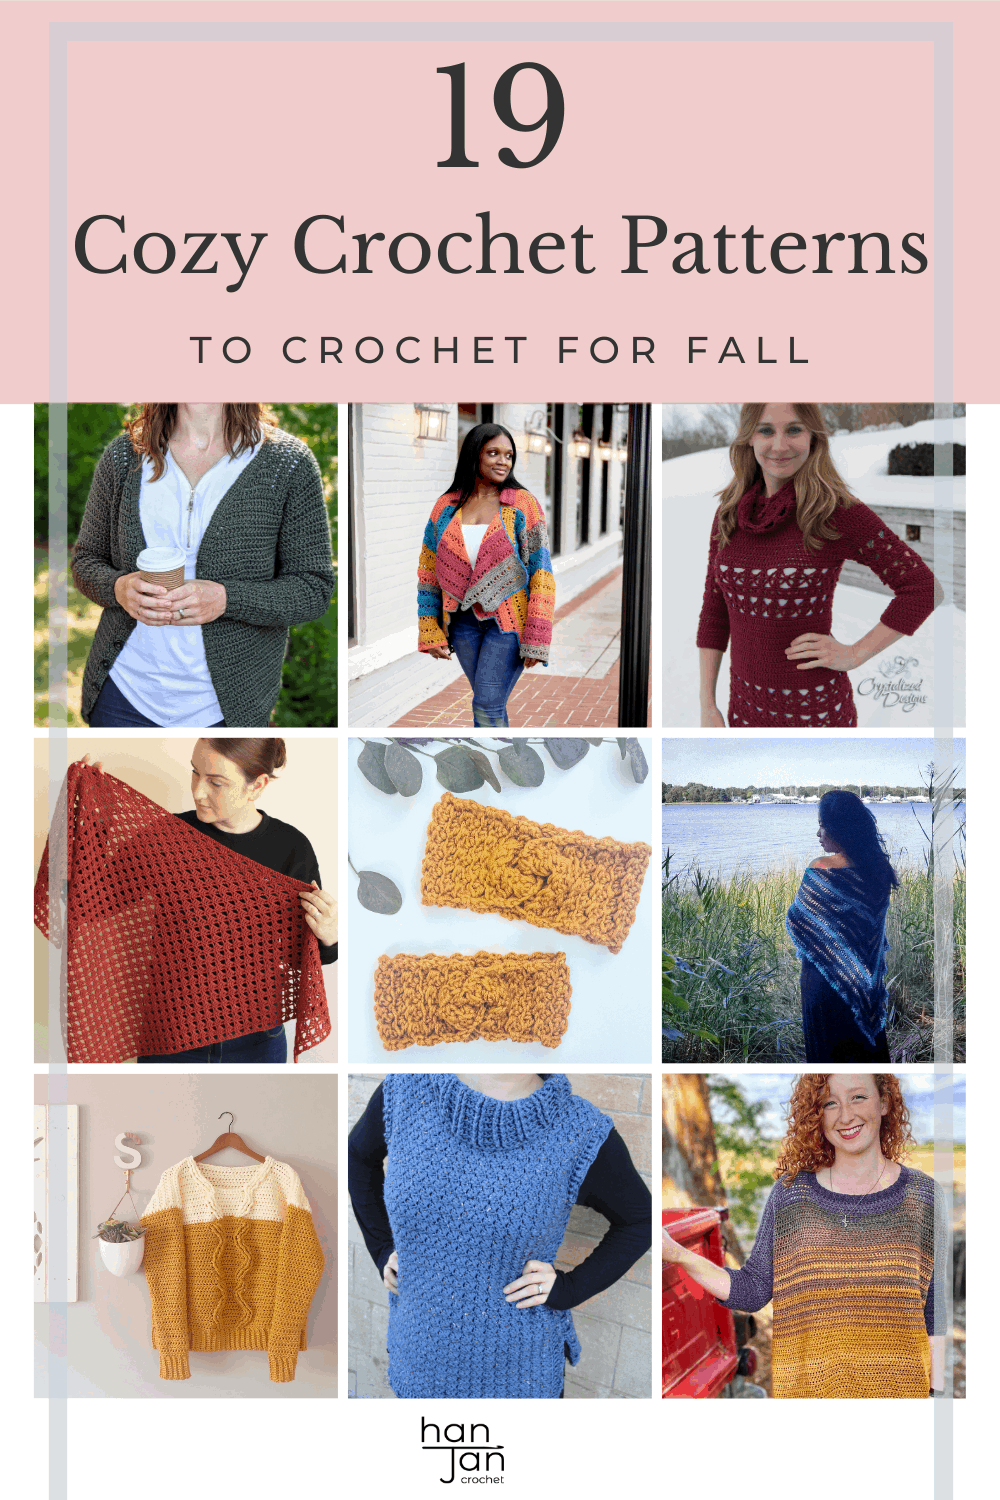 19 cozy crochet patterns for Fall including jumpers, cardigans and shawls